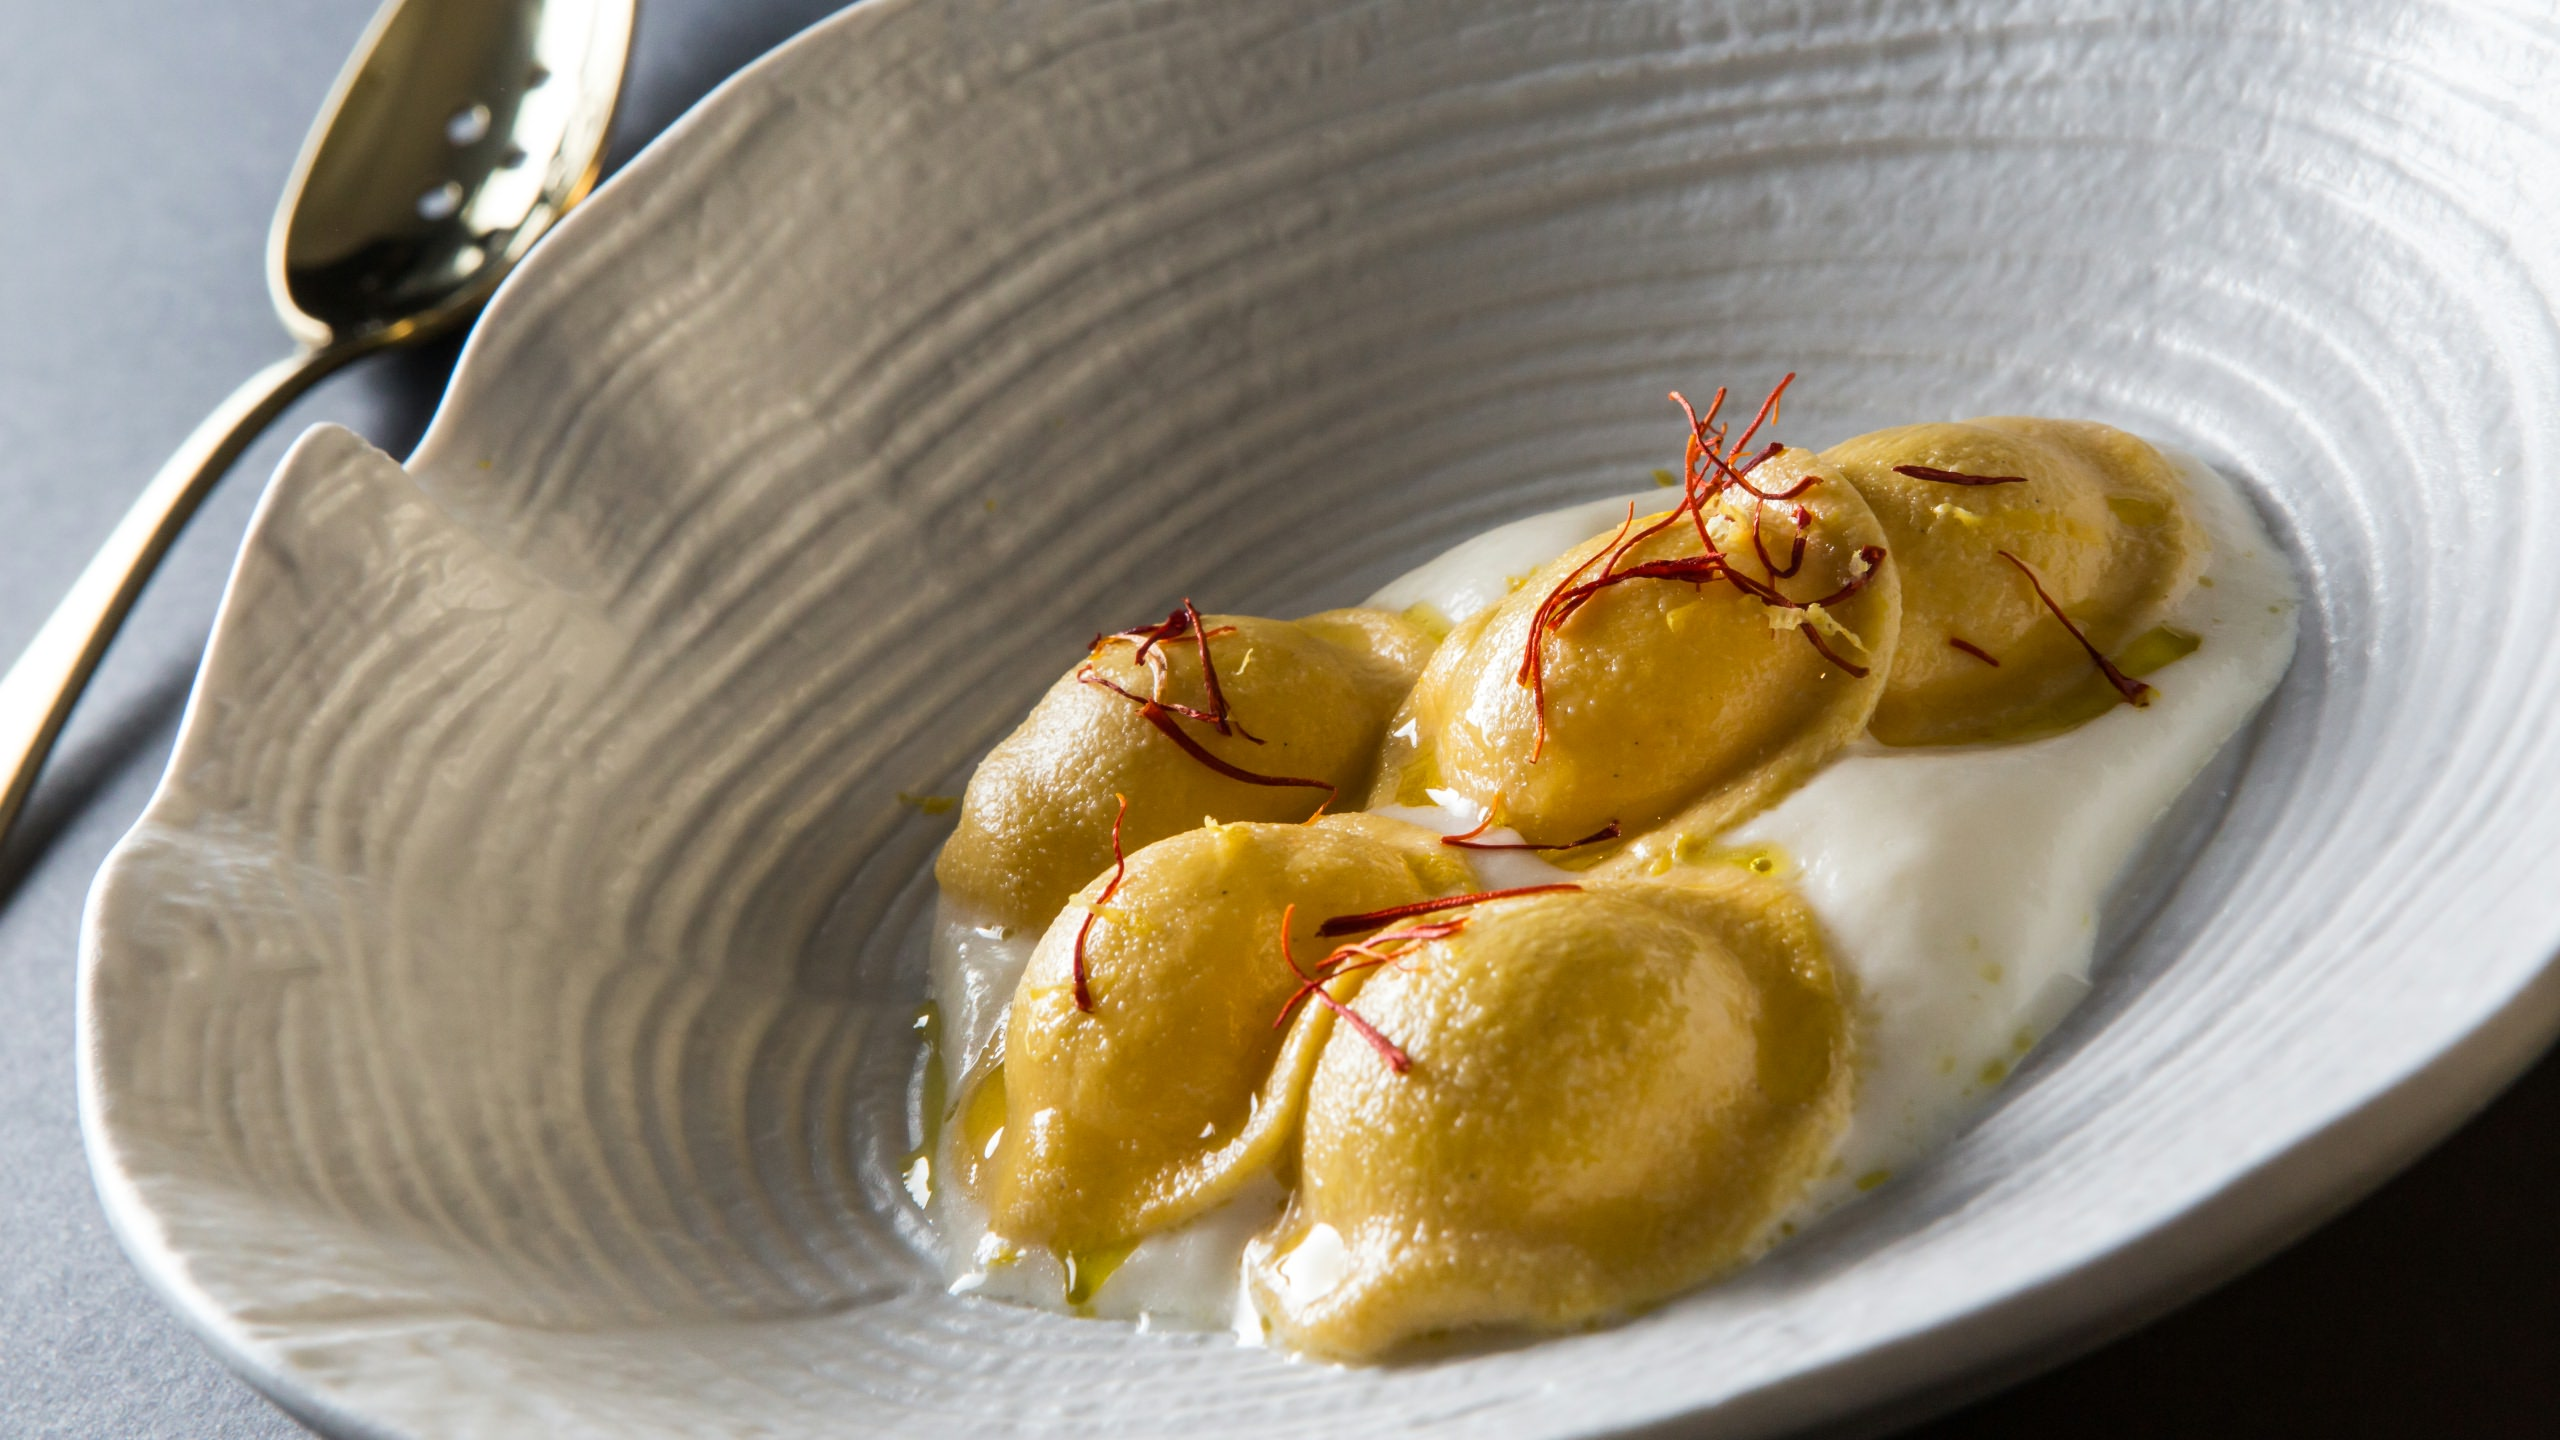 all-oro-cappelletti-in-brodo-asciutto-parmigiano-zafferano-limone